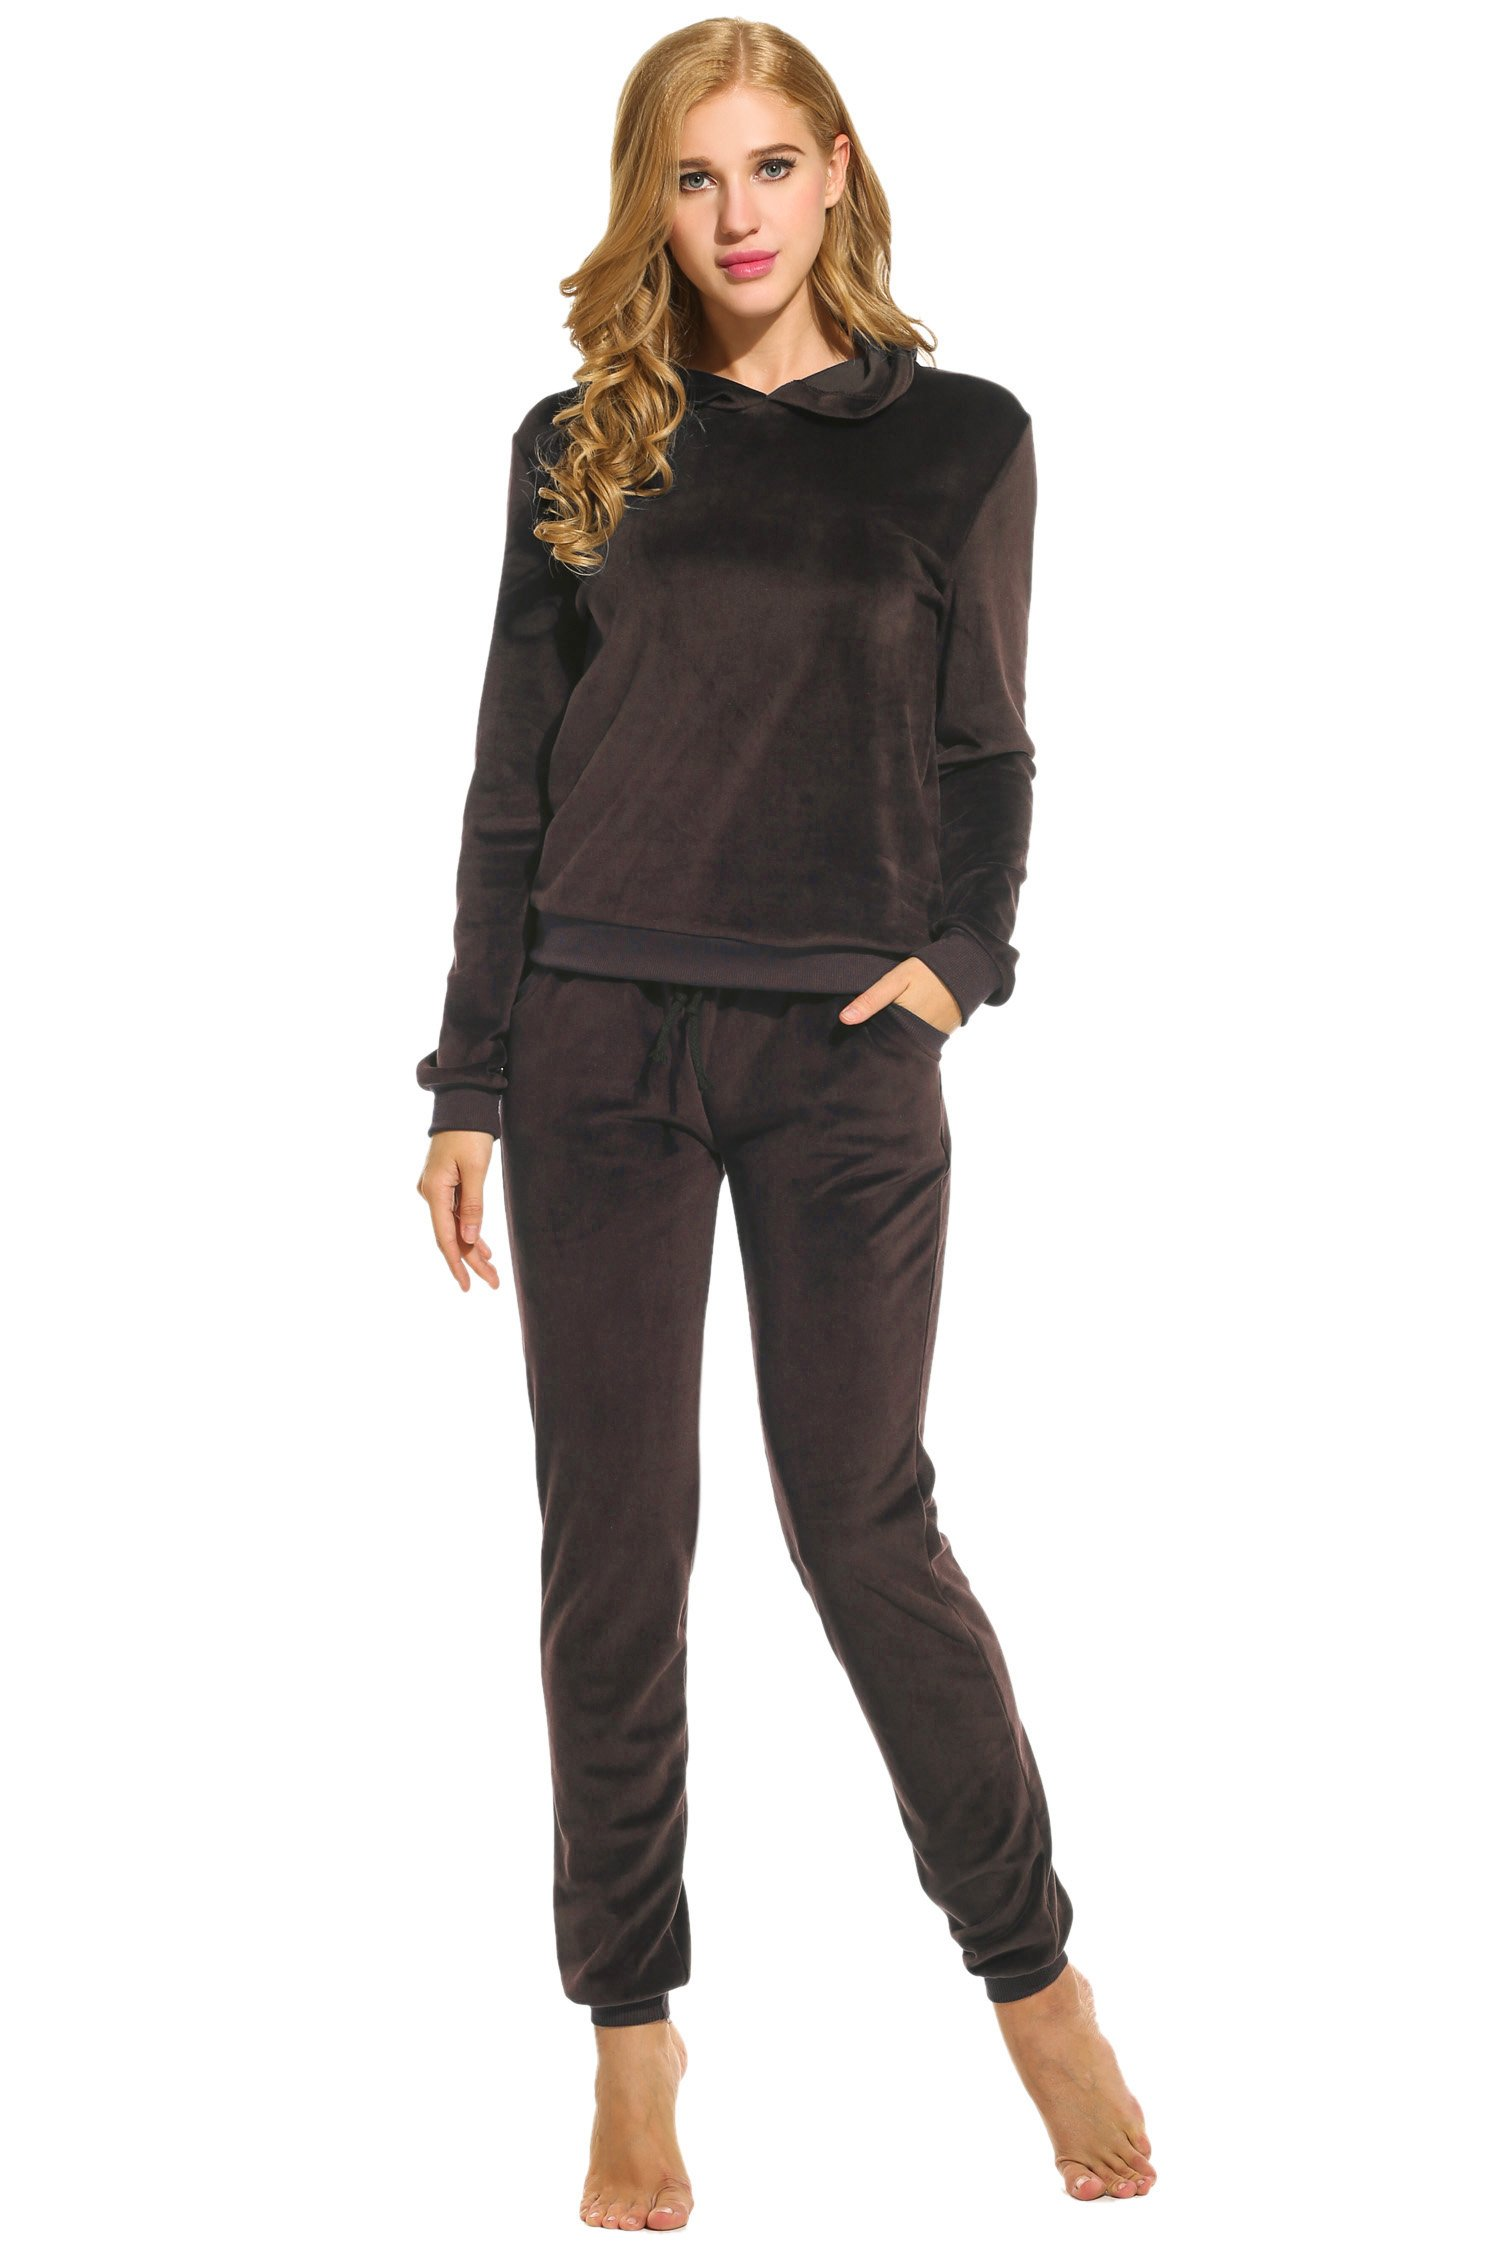 Hotouch Women's Sweatsuit Set Velour Hoodie and Track Pants Coffee L by Hotouch (Image #1)